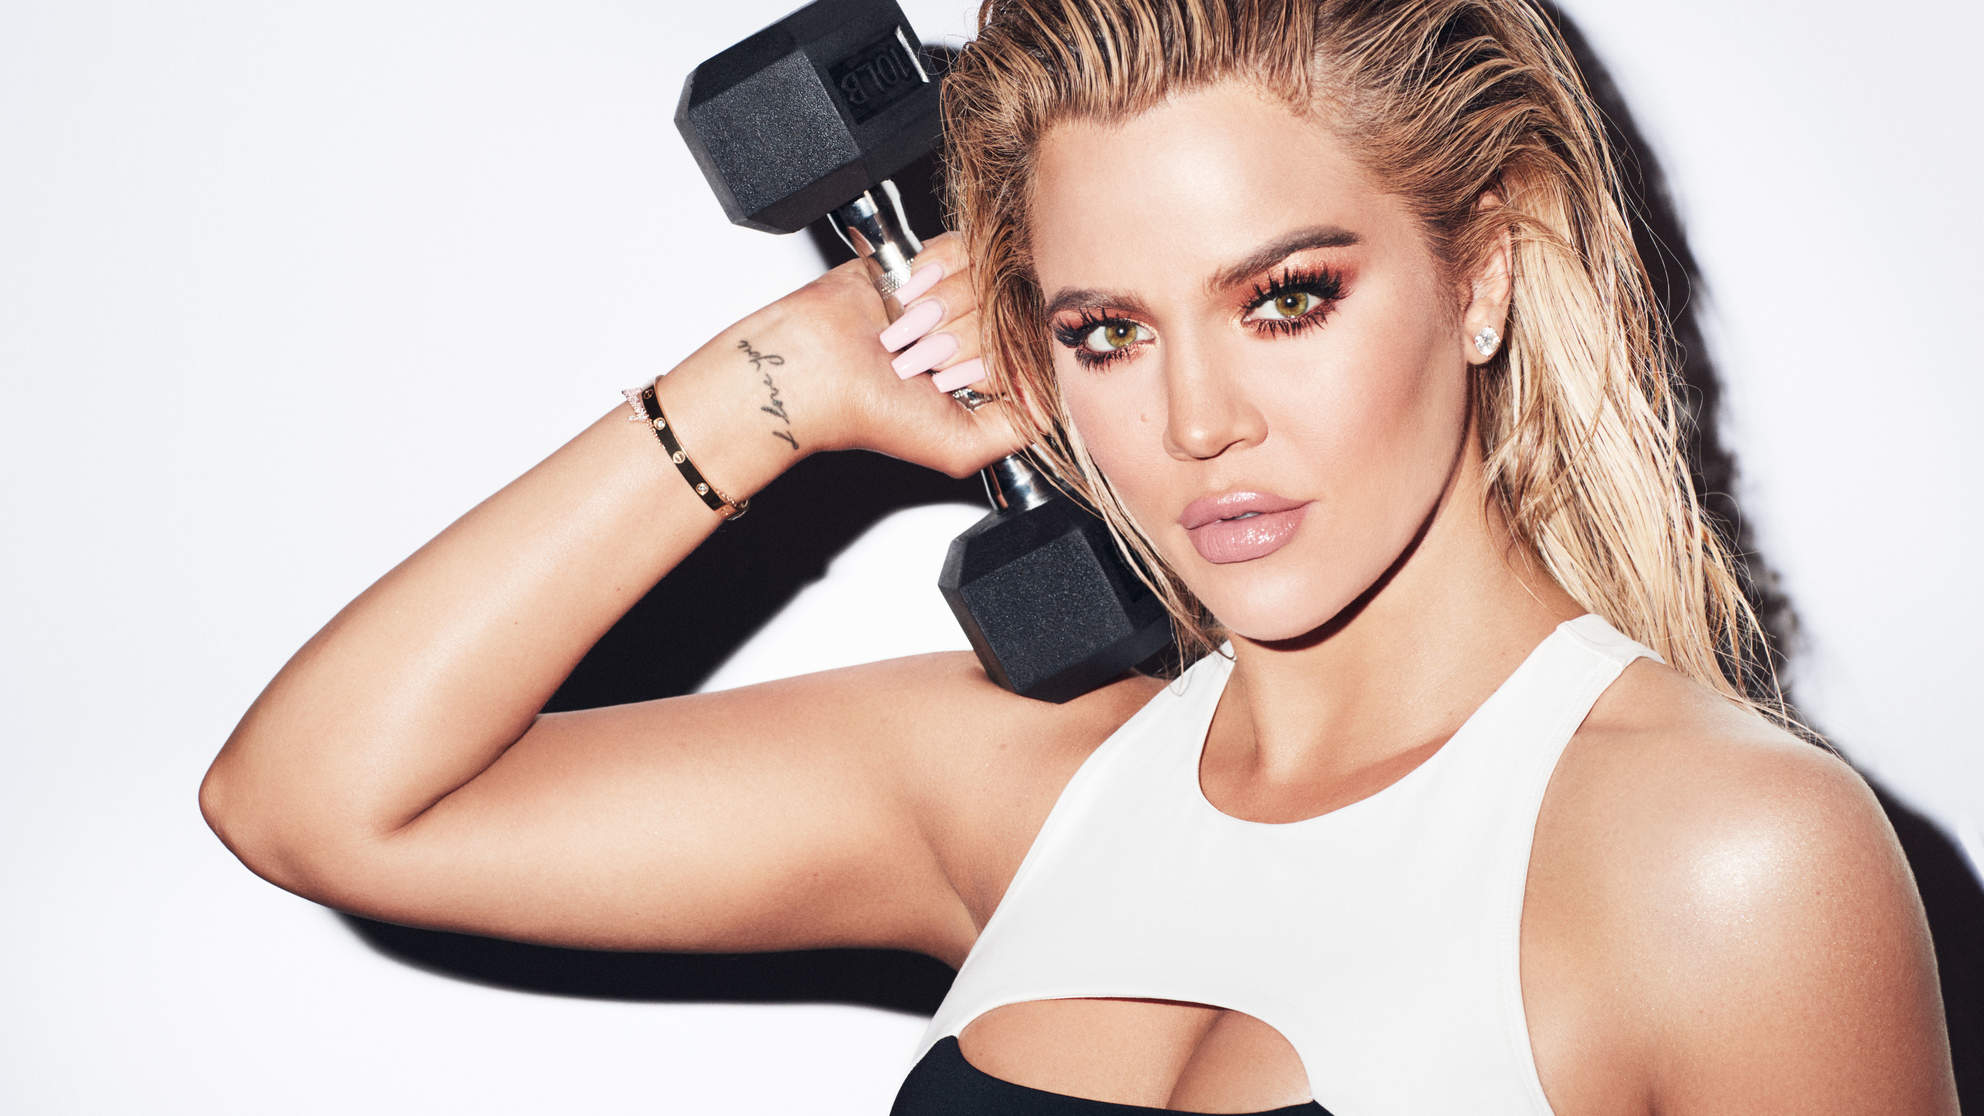 Khloe Kardashian 'splits' from Tristan after he 'cheats' with Kylie's best friend